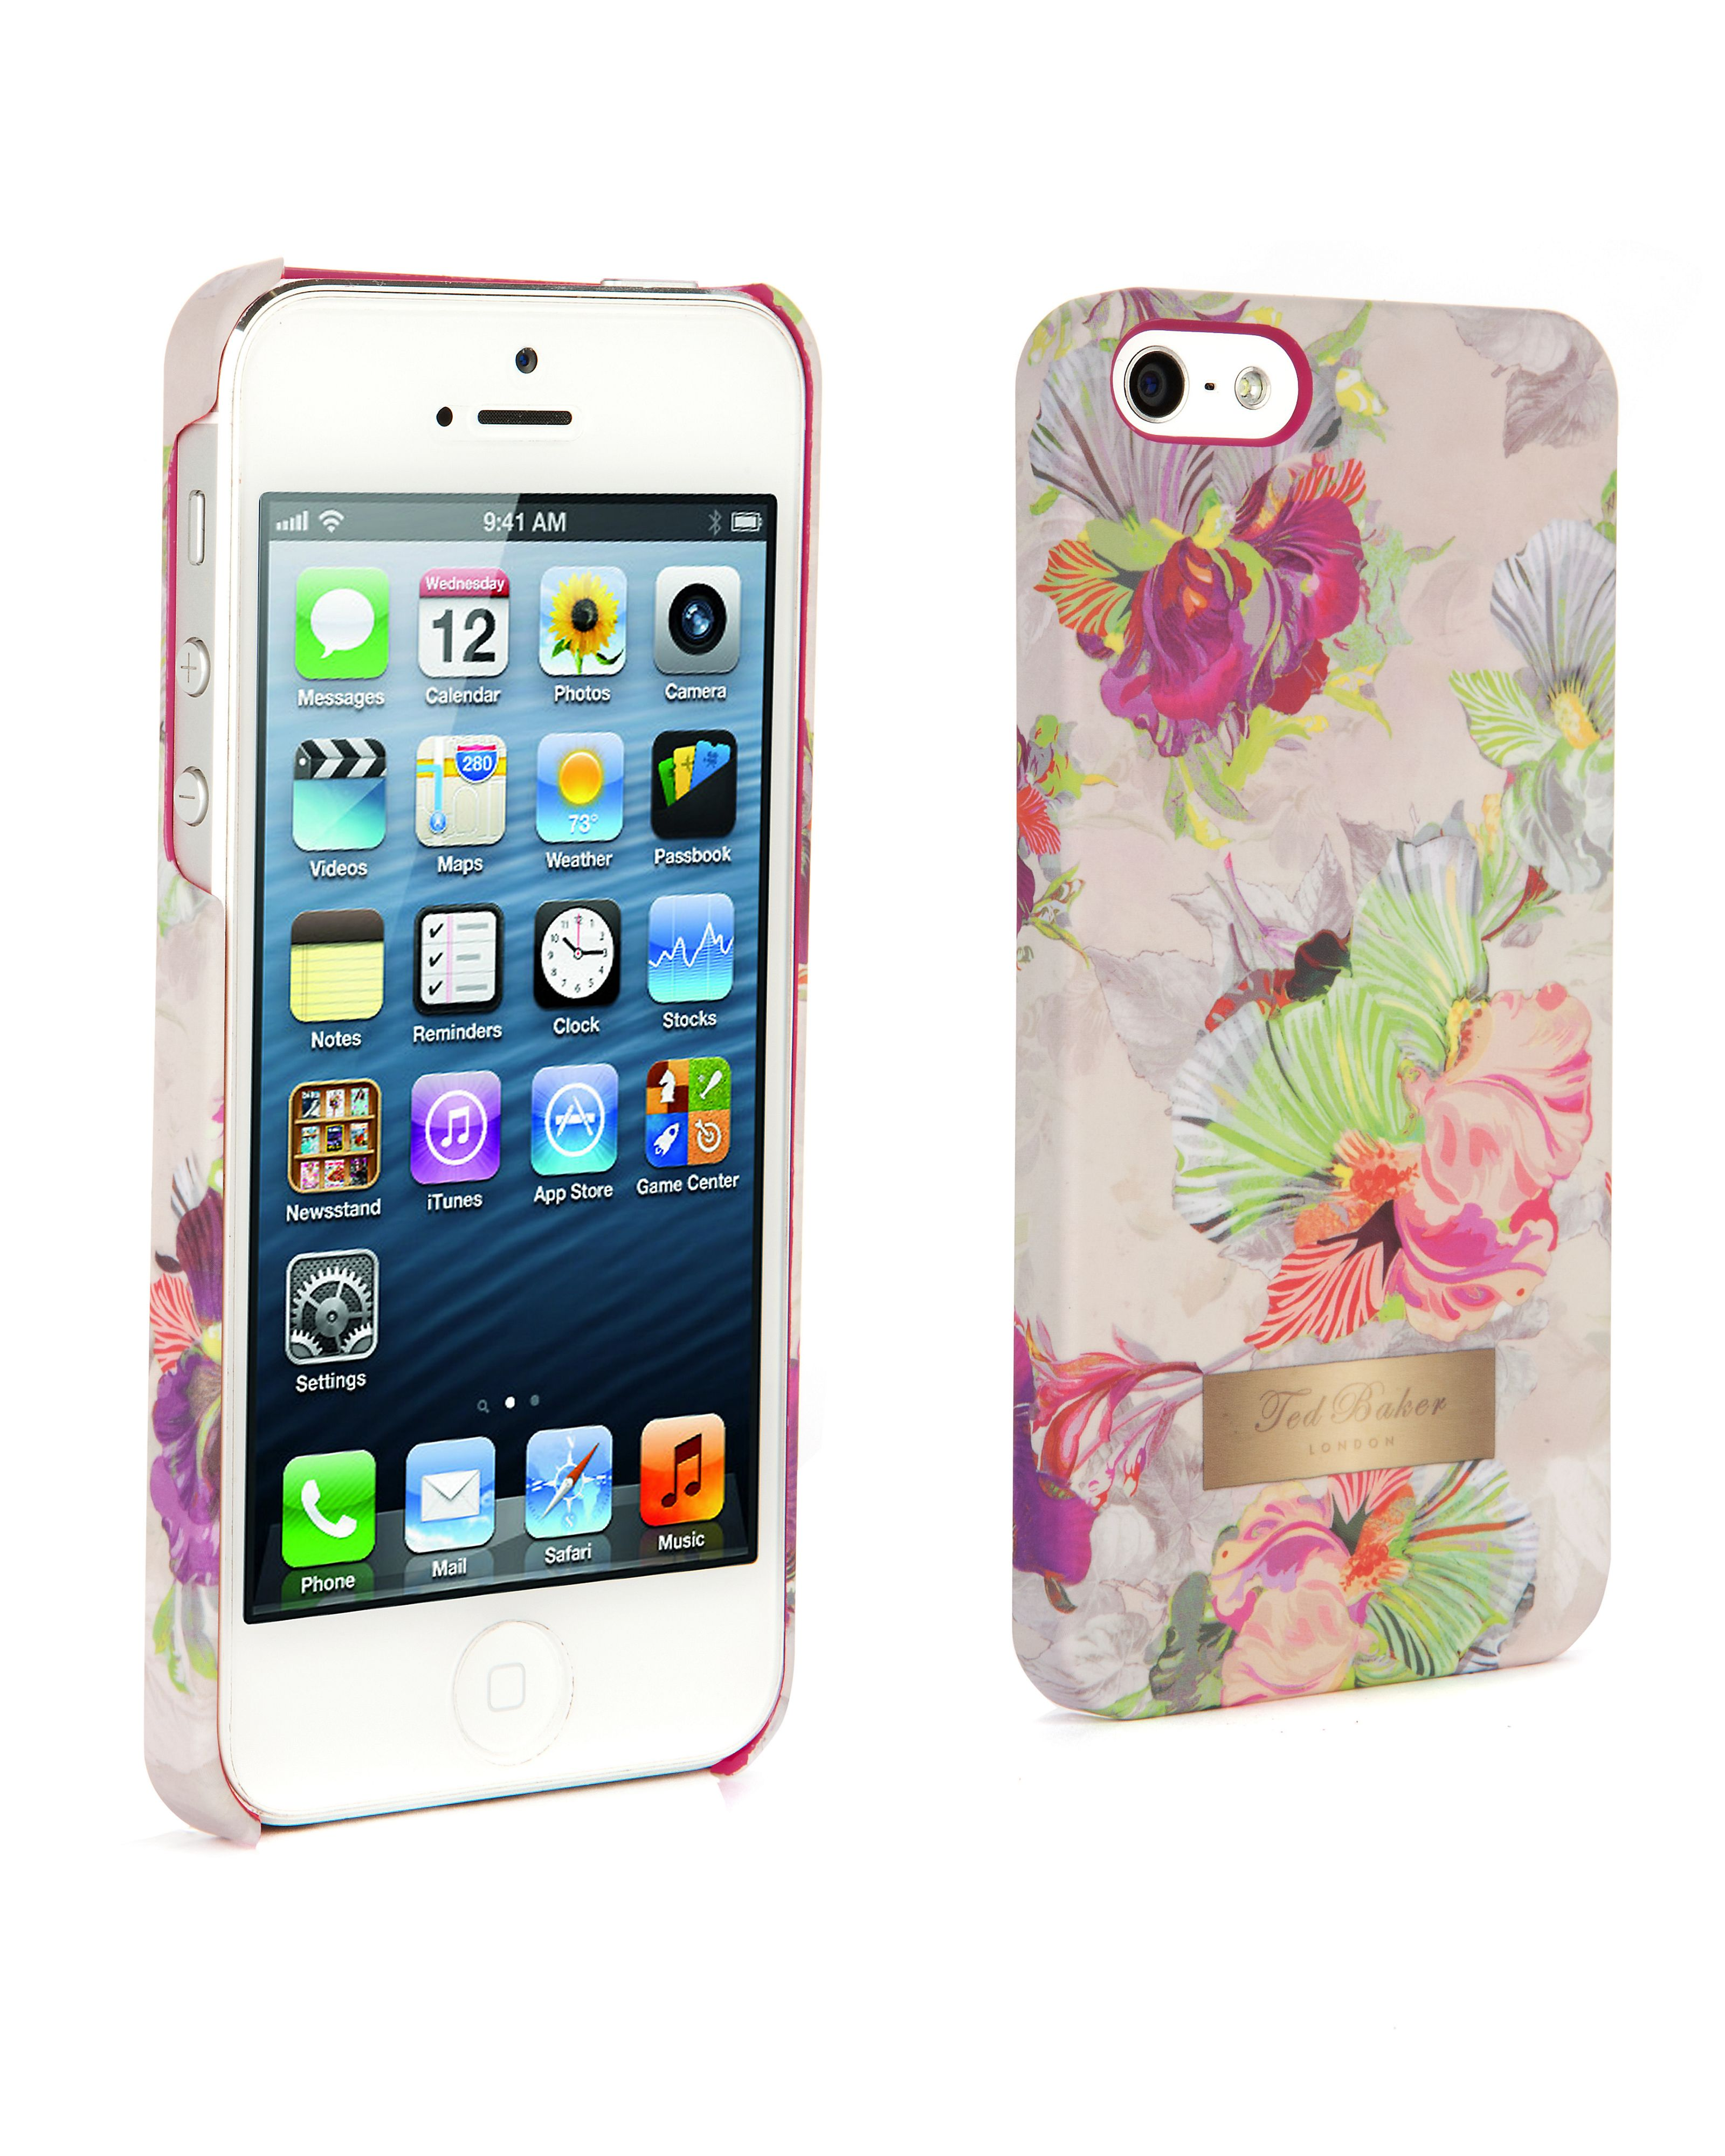 Lona treasured orchid phone case